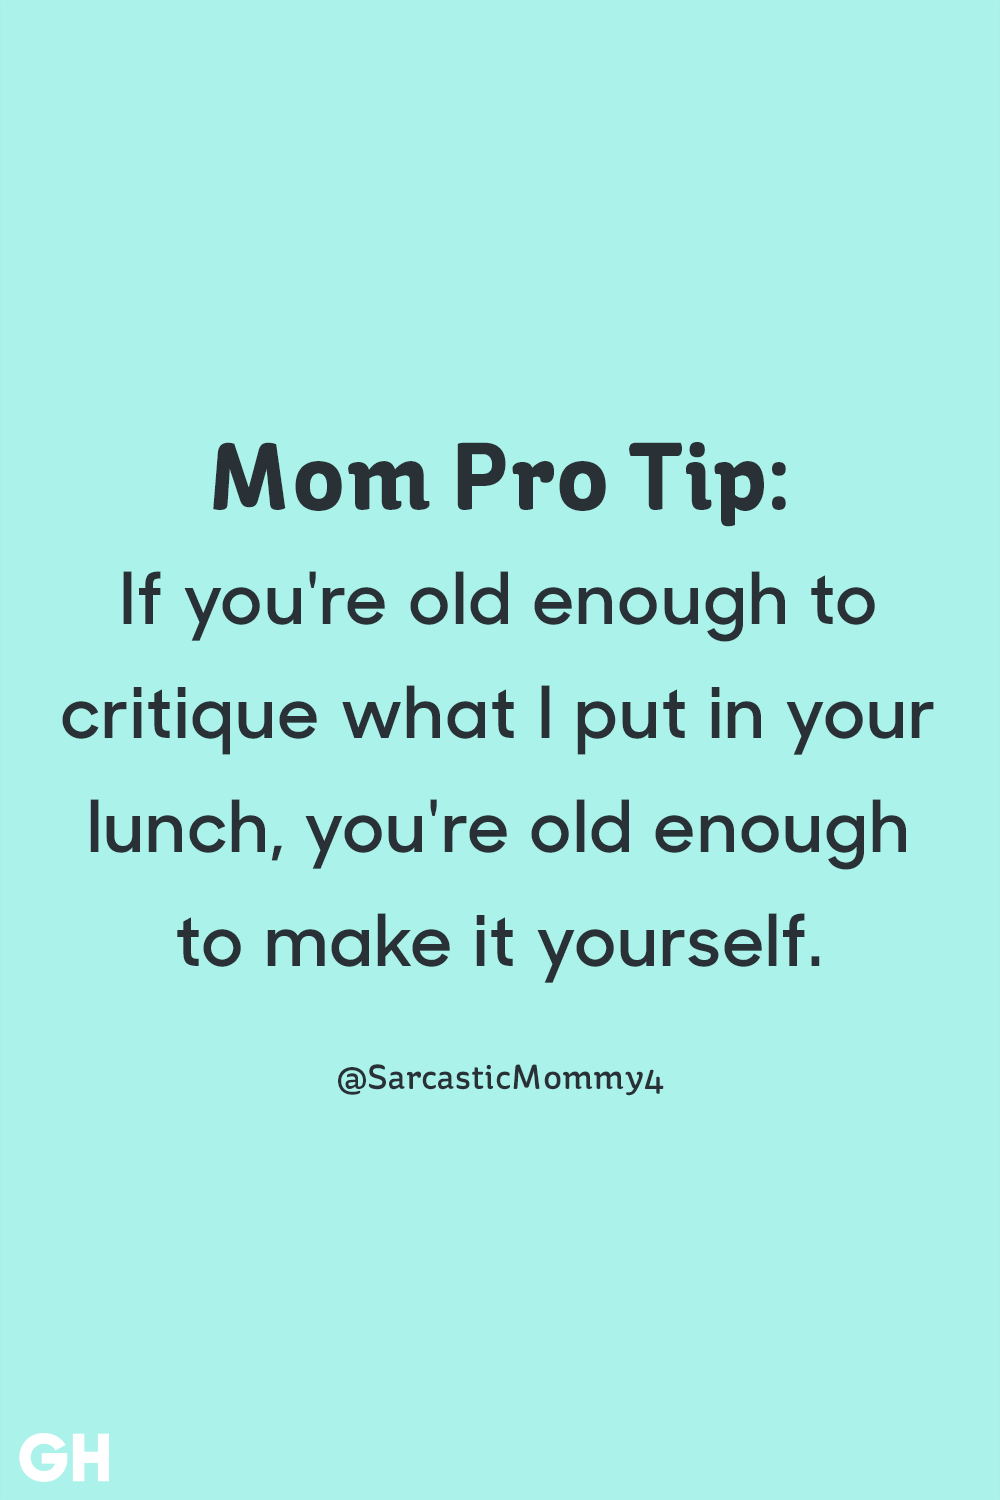 If You're Old Enough Funny Mom Quotes